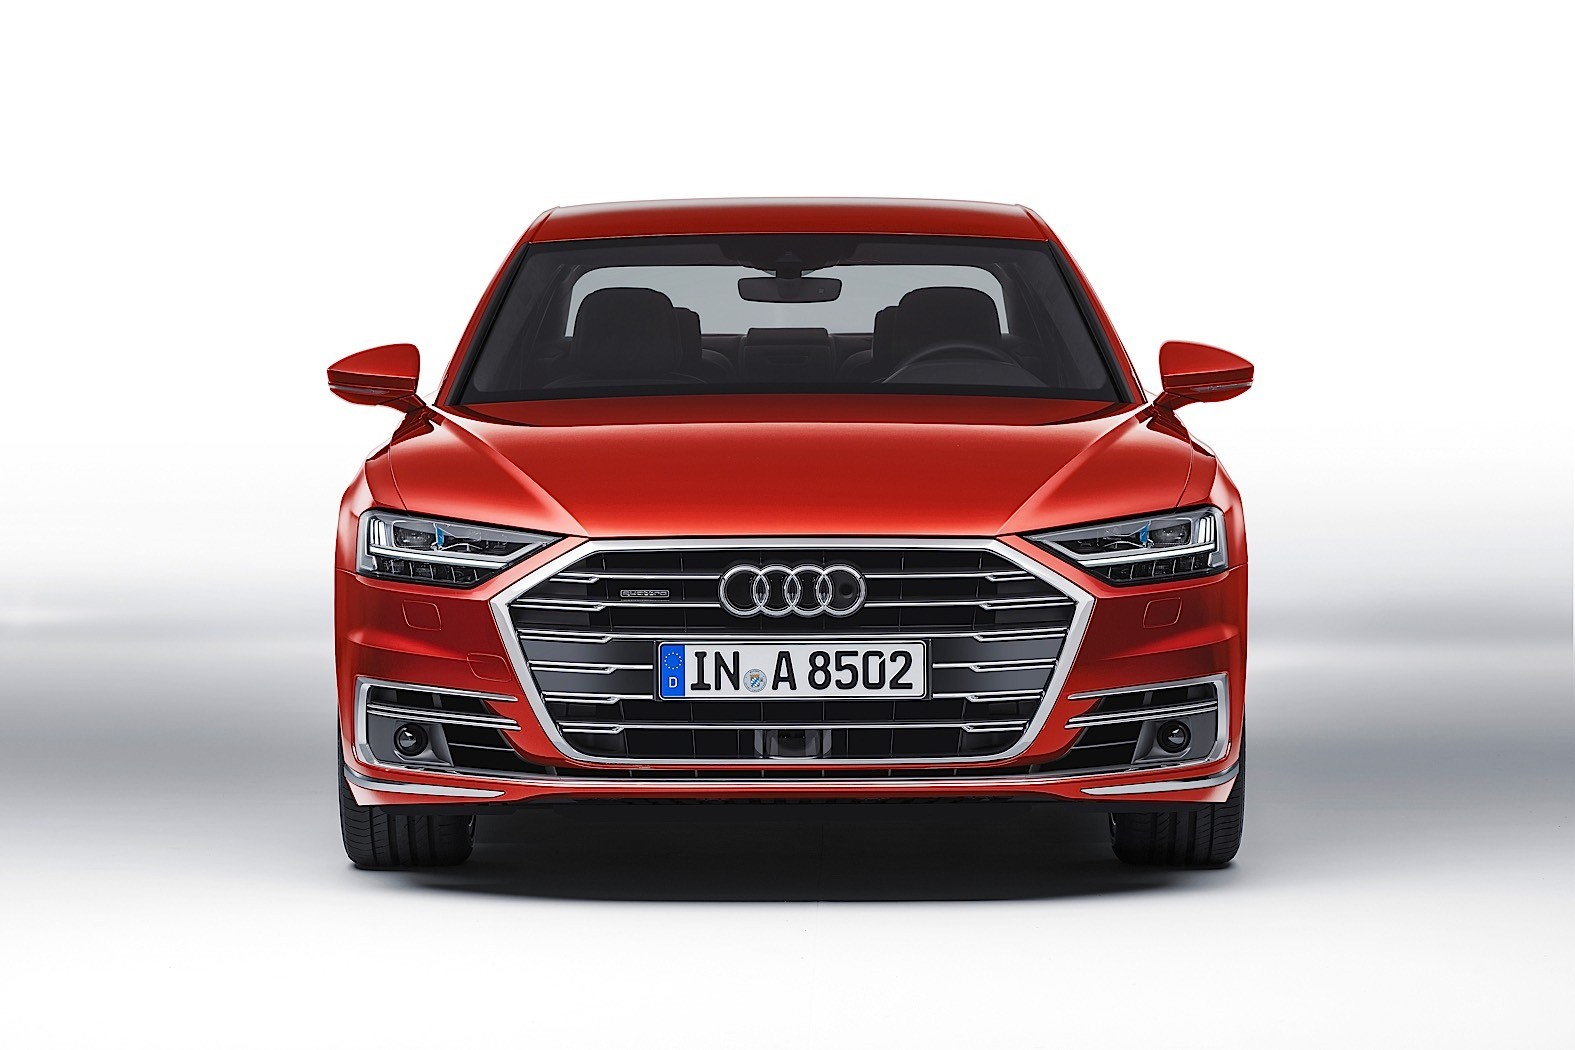 Audi hints at new flagship coupe to take on BMW 8 Series